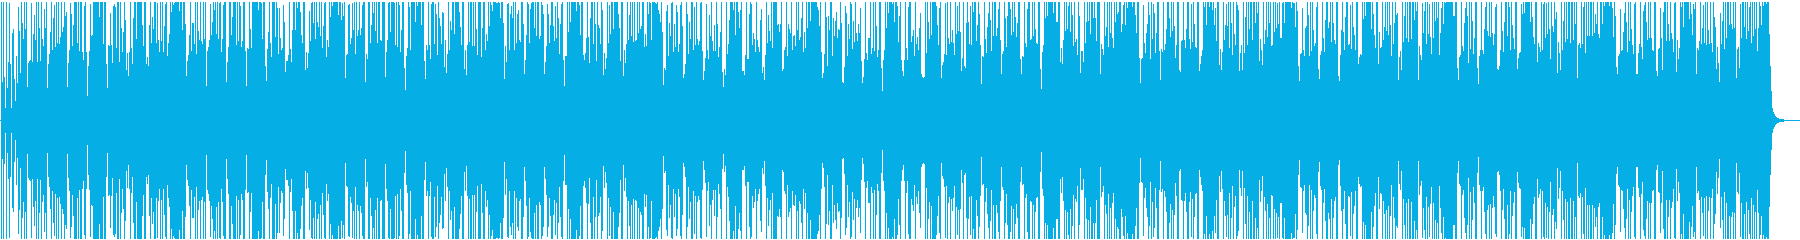 Event / Video / Exciting / Bright atmosphere's reproduced waveform